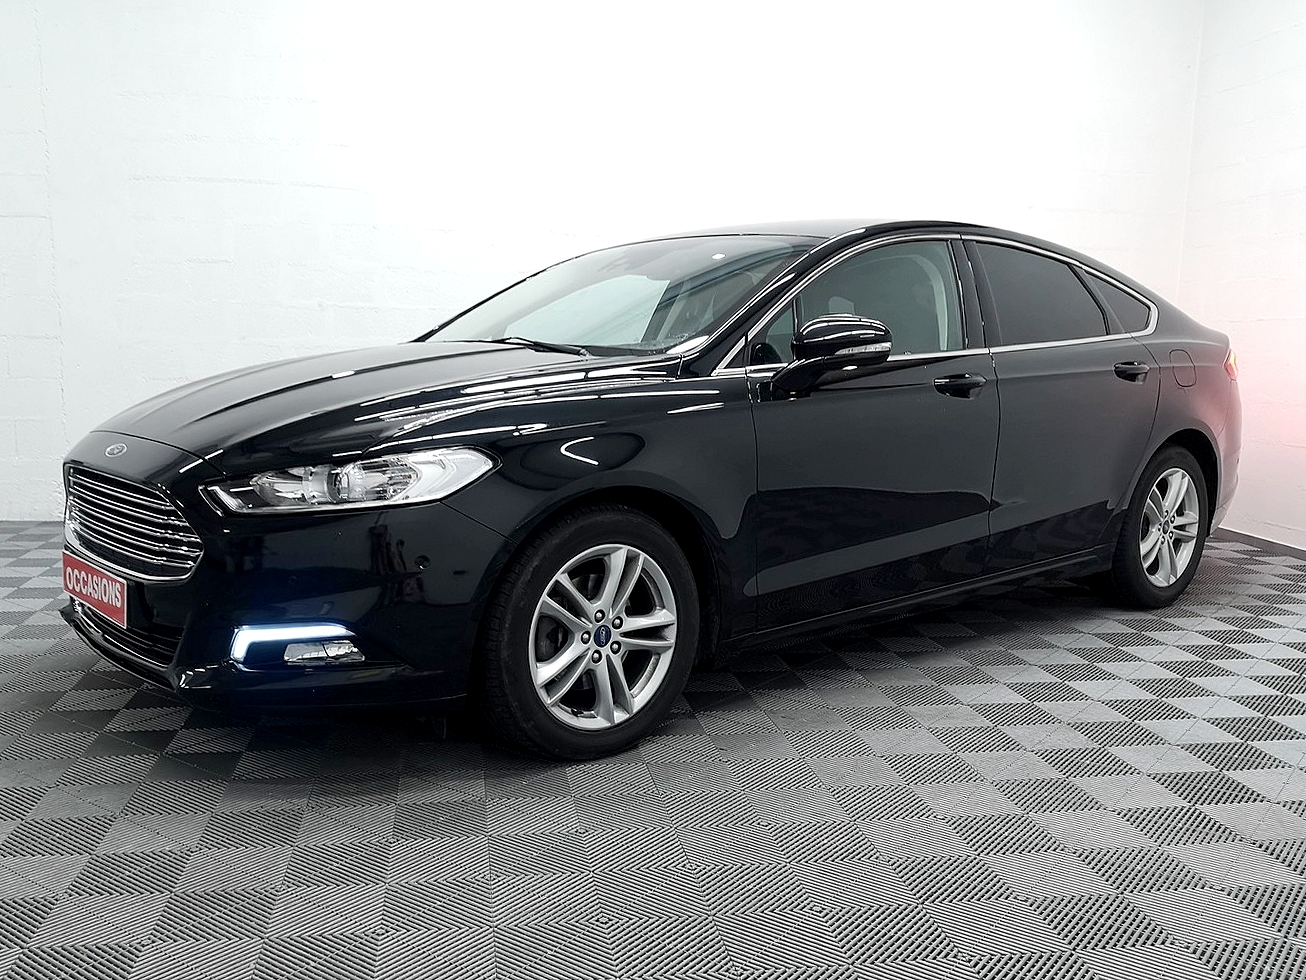 FORD MONDEO 2.0 TDCi 150 Titanium PowerShift A d'occasion